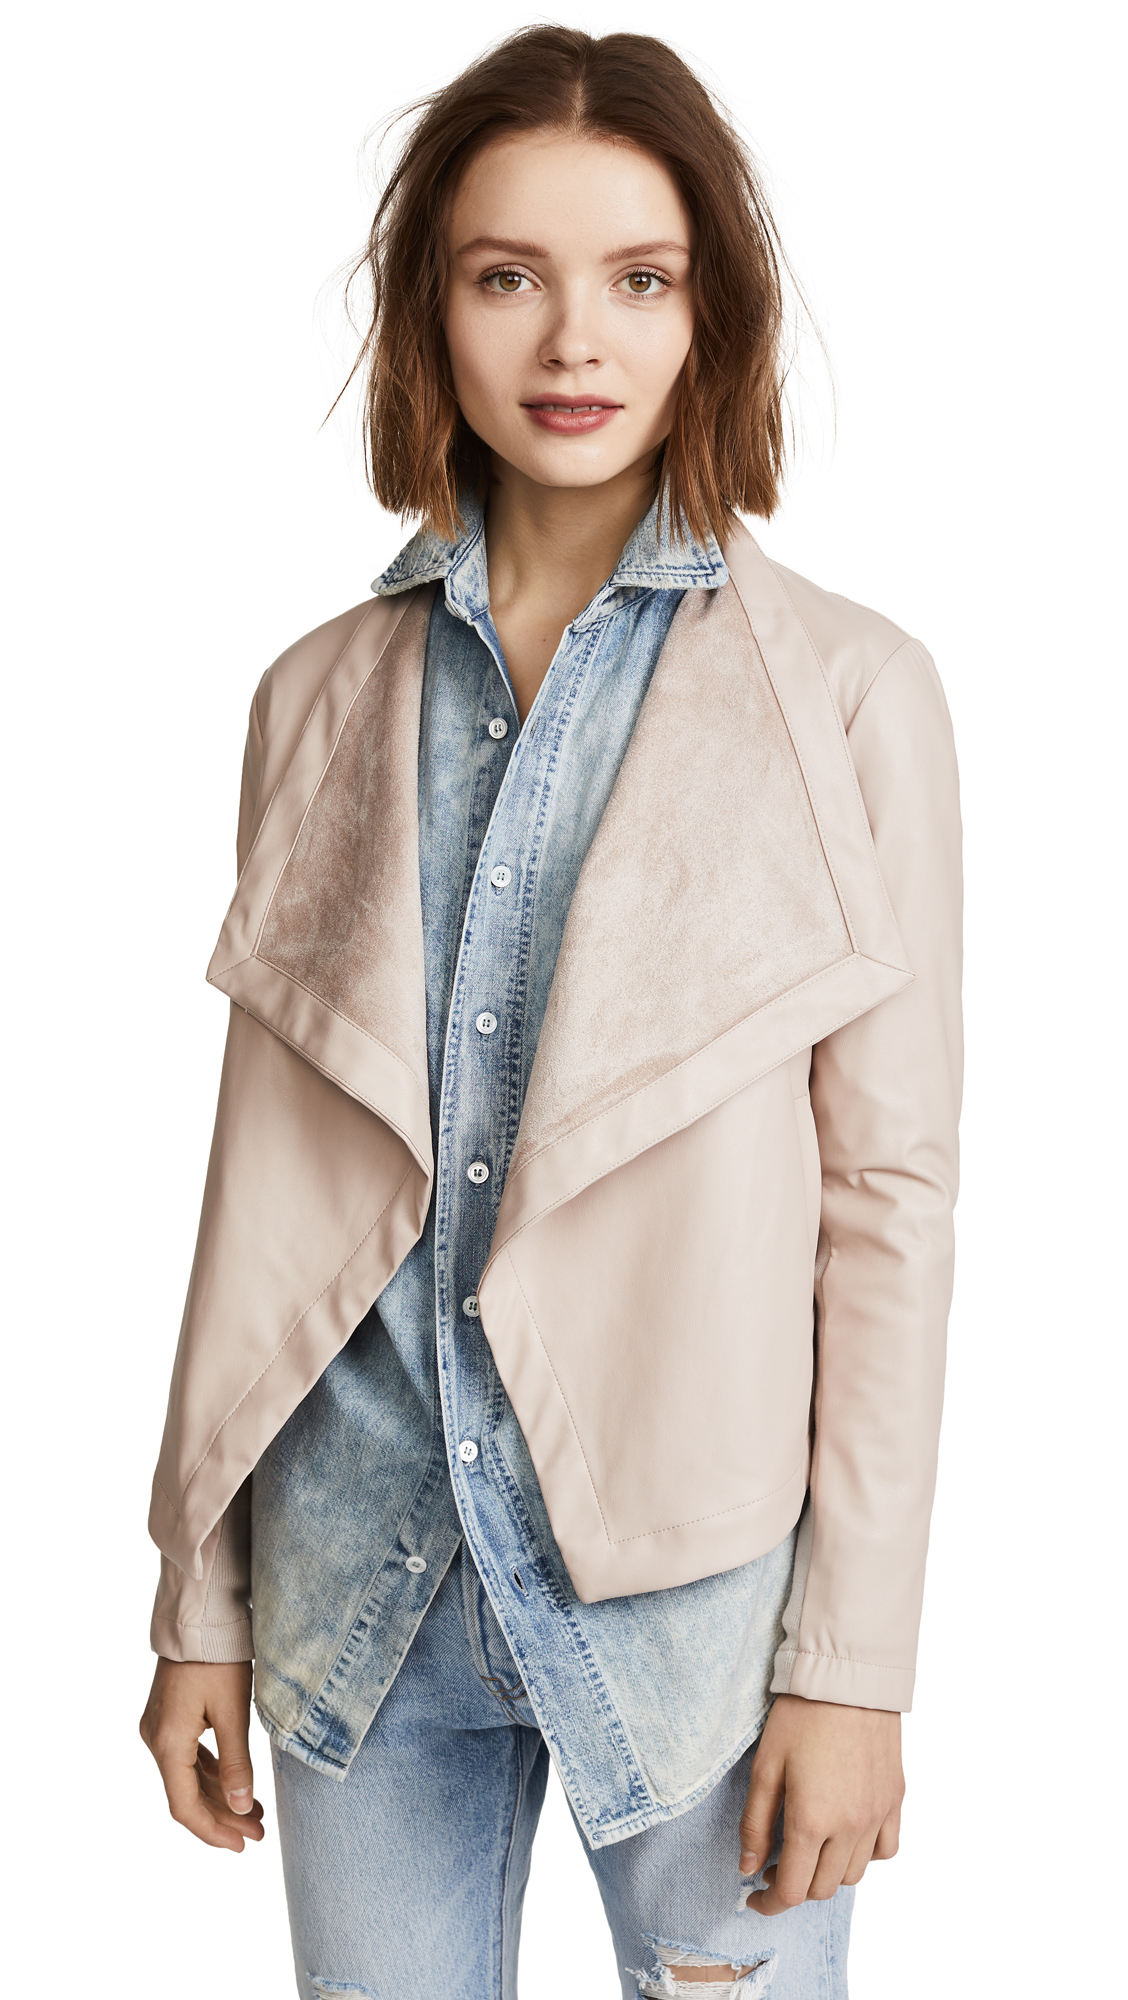 BB Dakota Peppin Vegan Leather Drapey Jacket - Parchment